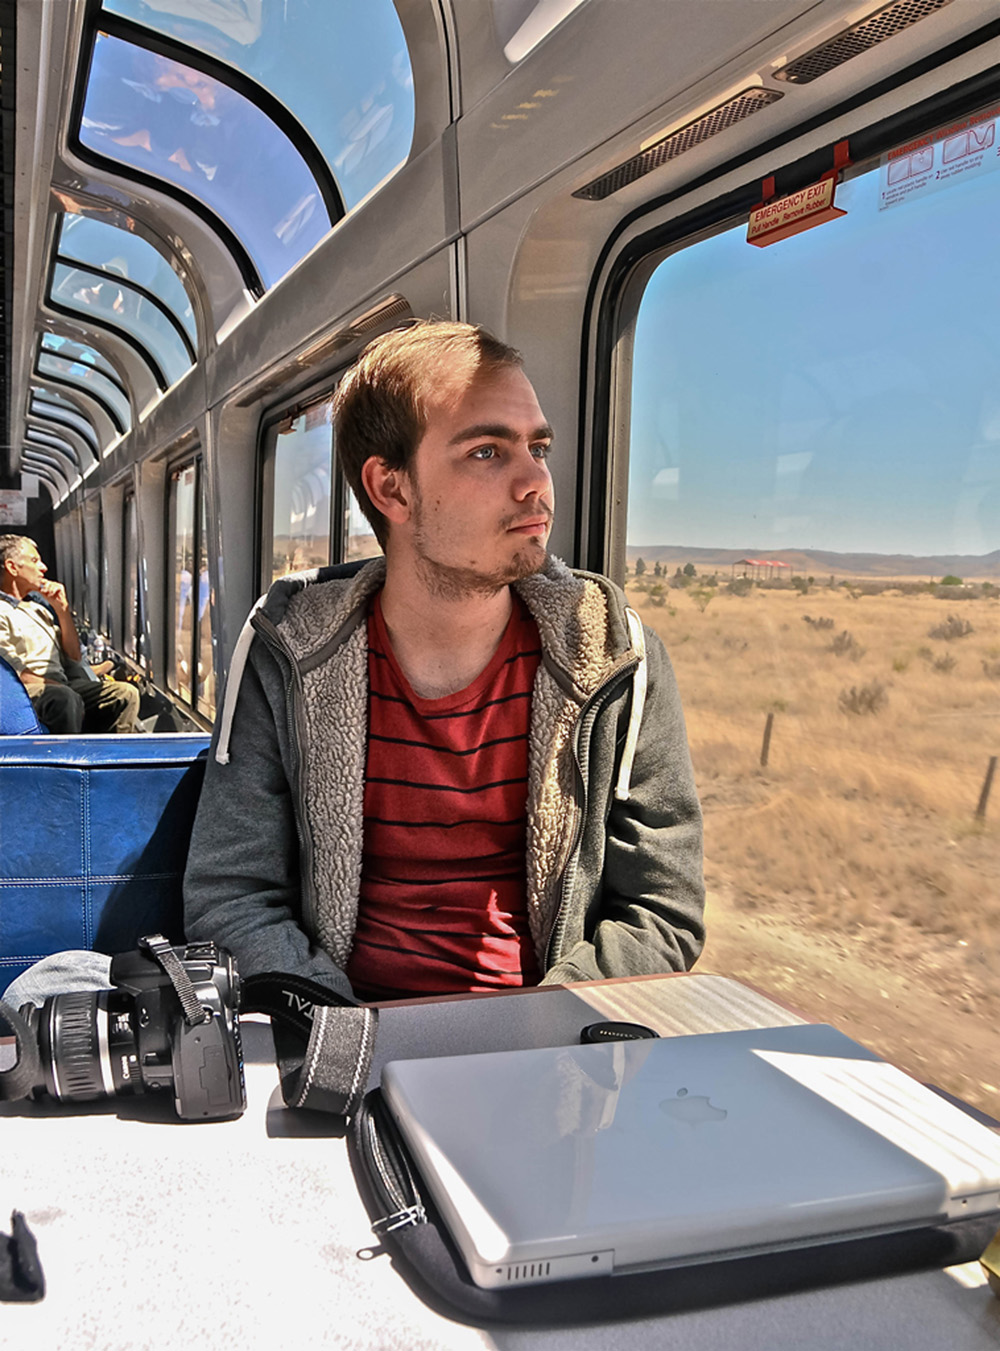 """Amtracks Series: Young fellow traveler to L.A."""